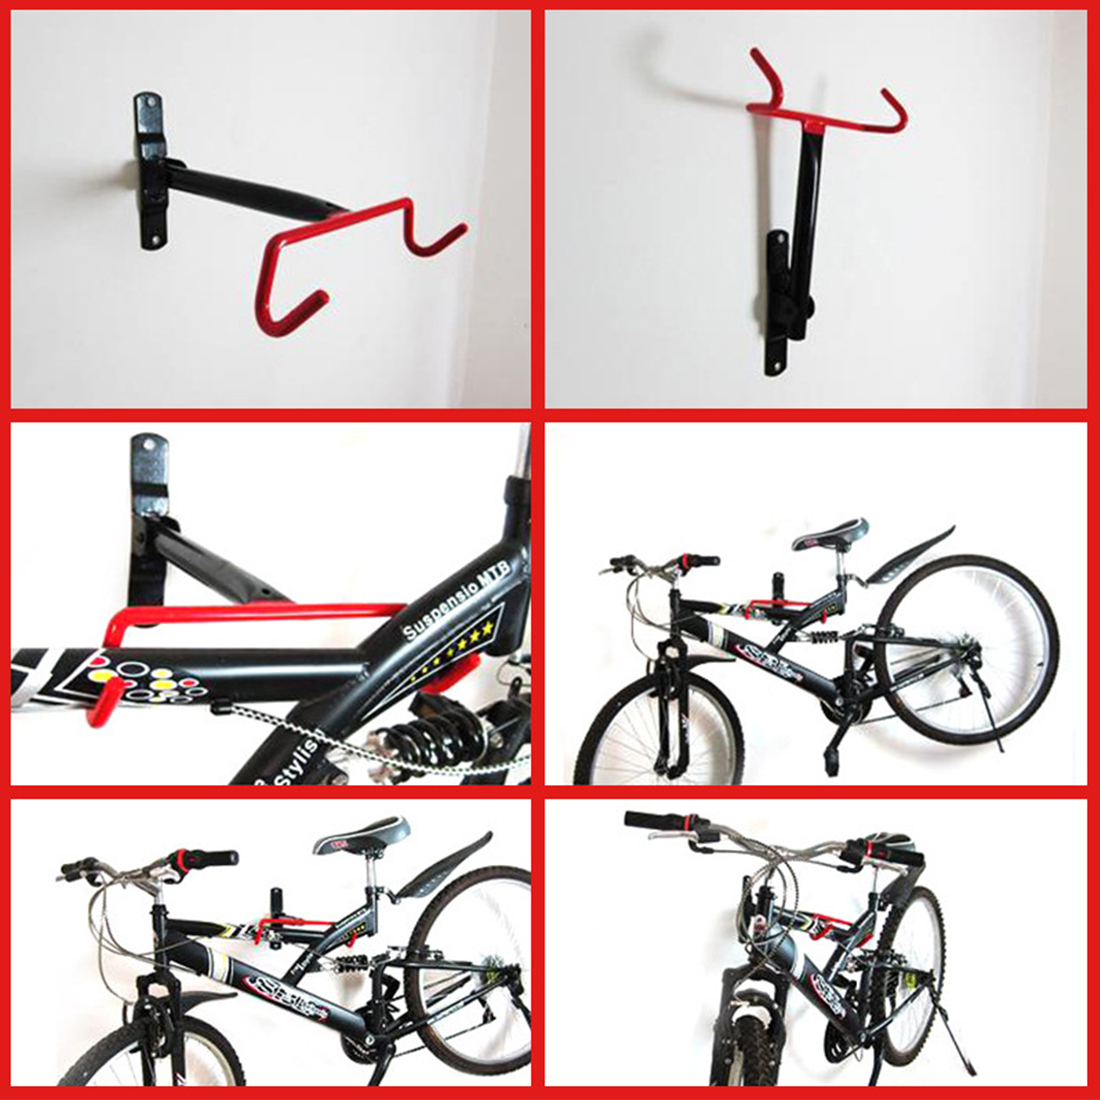 Parking Garage Bike Rack Us 14 24 16 Off Bicycle Tough Steel Storage Parking Rack Bike Holder Mount Hanger Hook Garage Wall Bike Stand Rack Bicycle Hook Holder Racks Red In